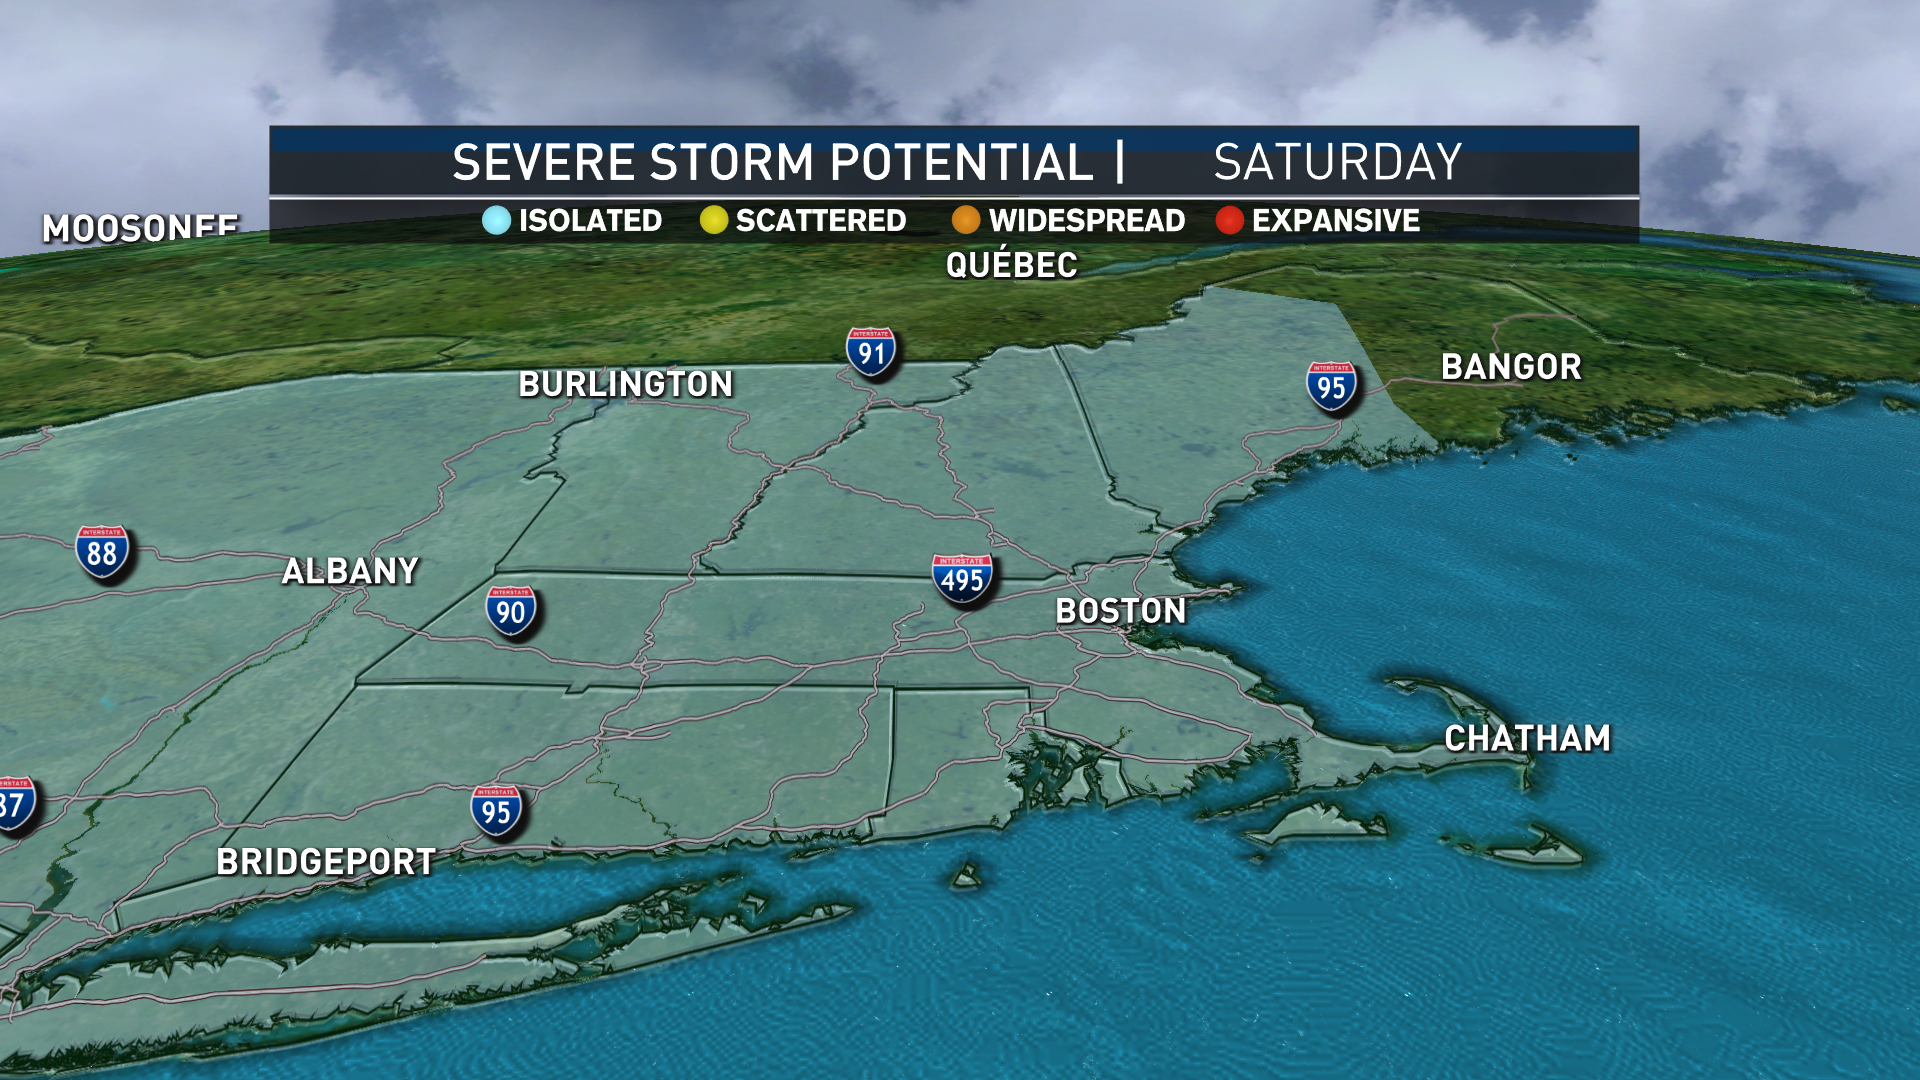 Tomorrow's Severe Thunderstorm Potential